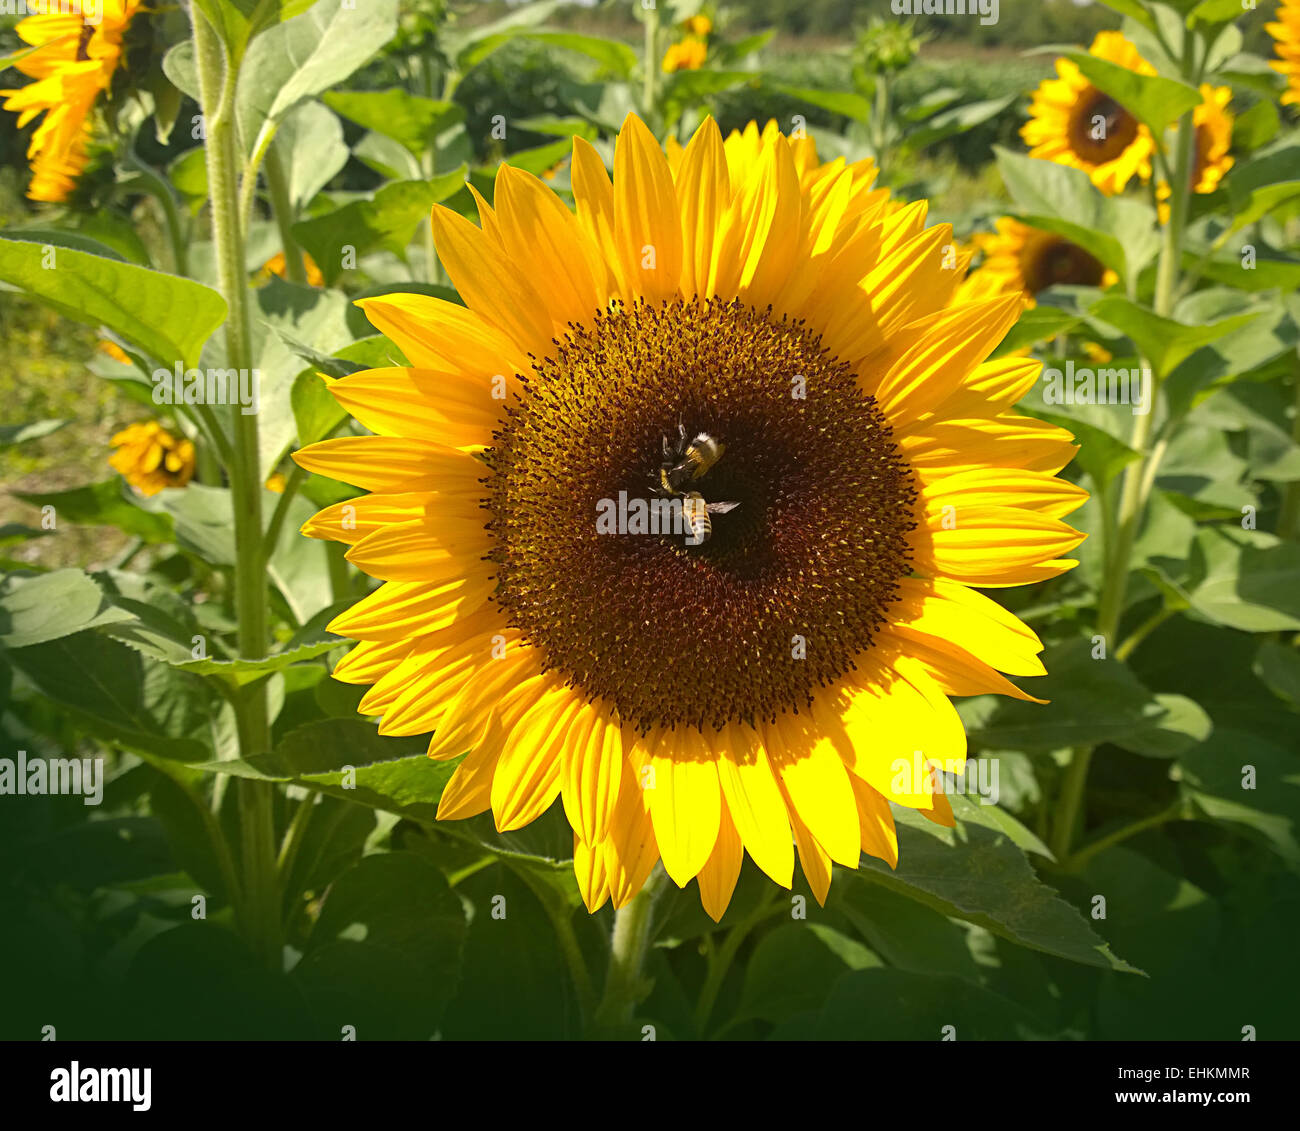 Sunflower with two bees close up in rural environment on